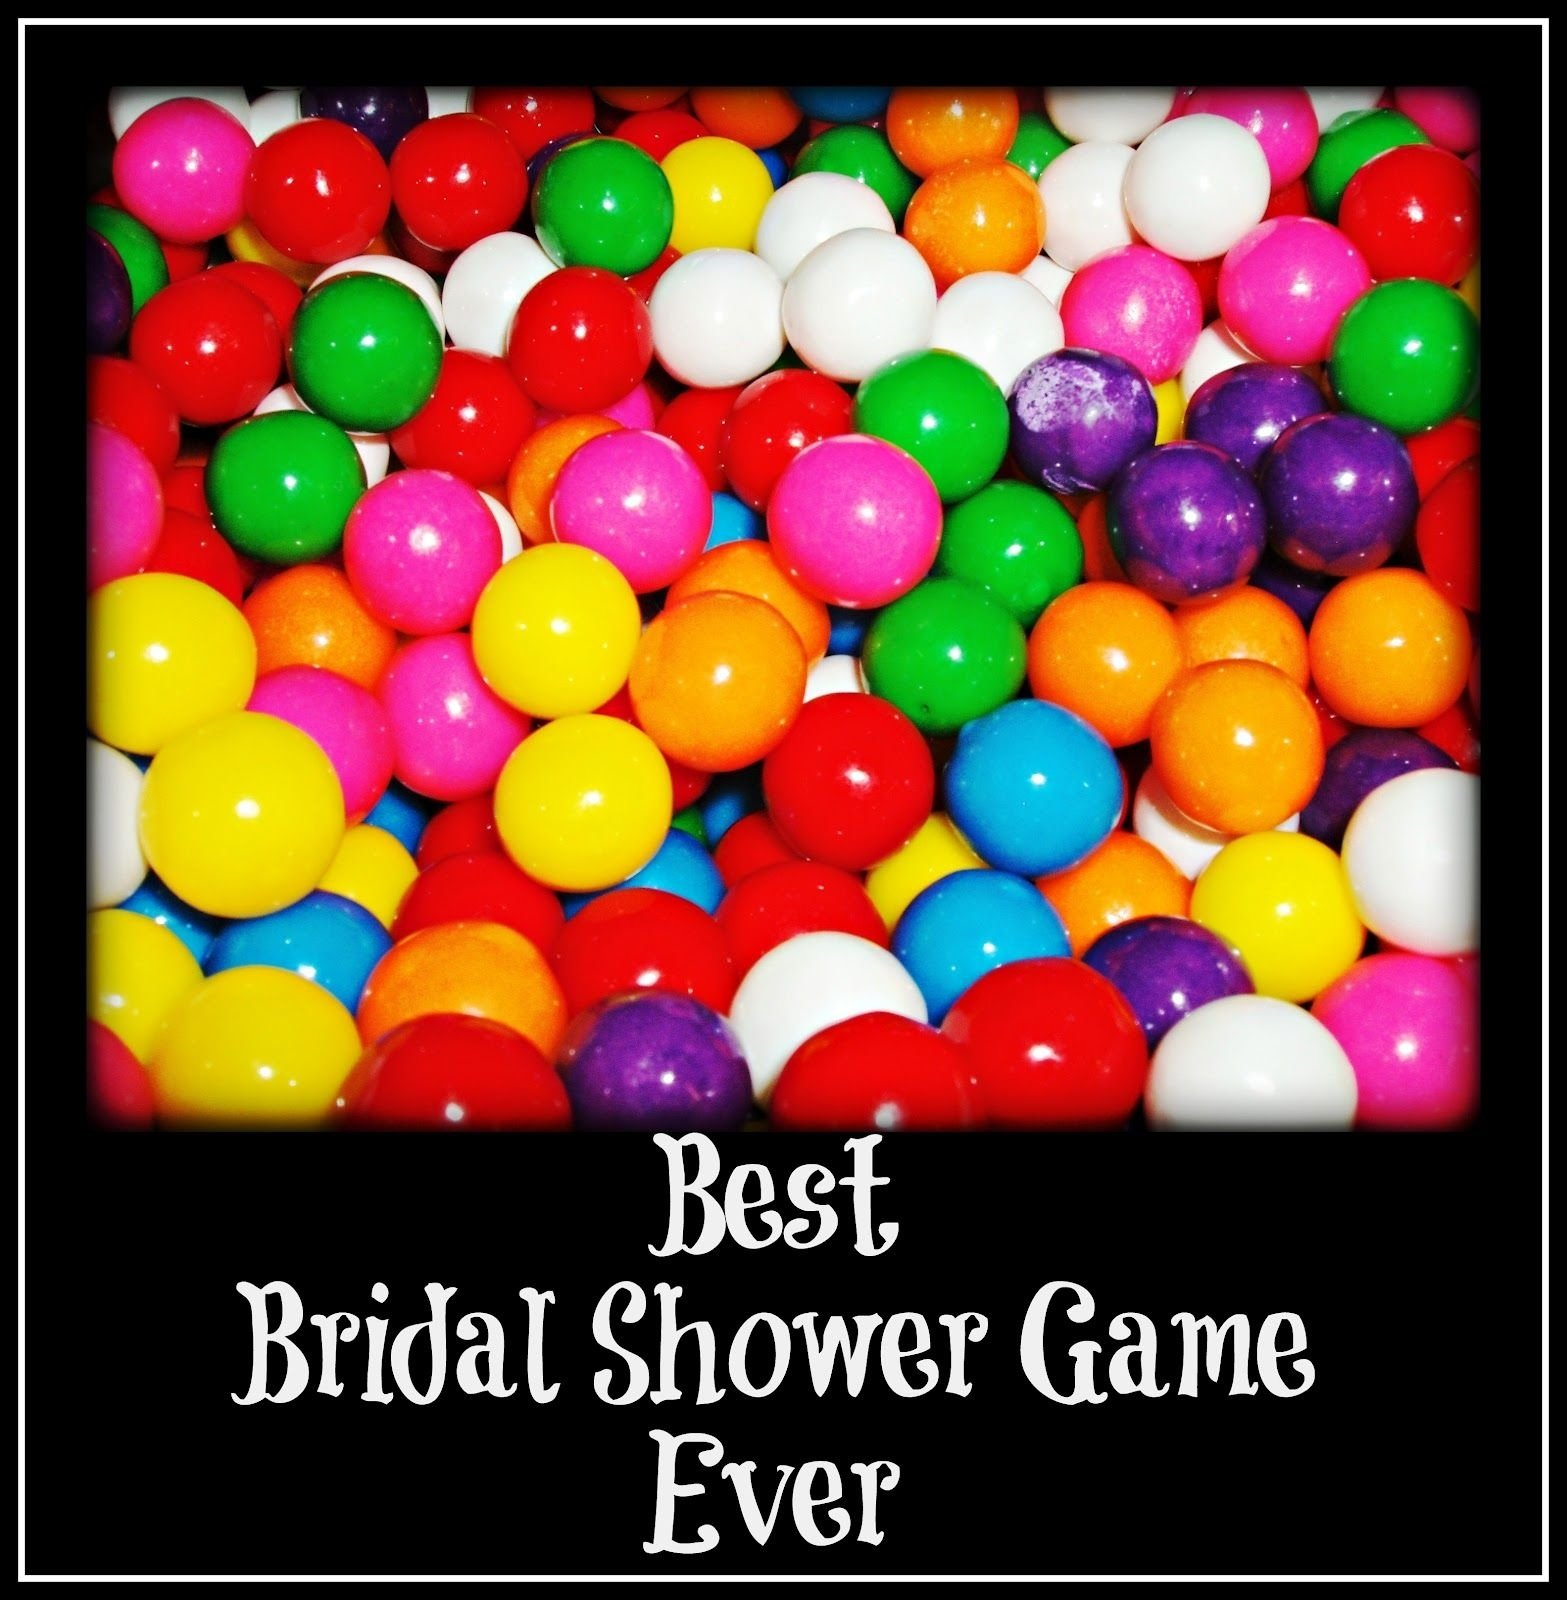 10 Spectacular Funny Bridal Shower Game Ideas not to burst your bubblegum calling all brides and bridesmaids 2020